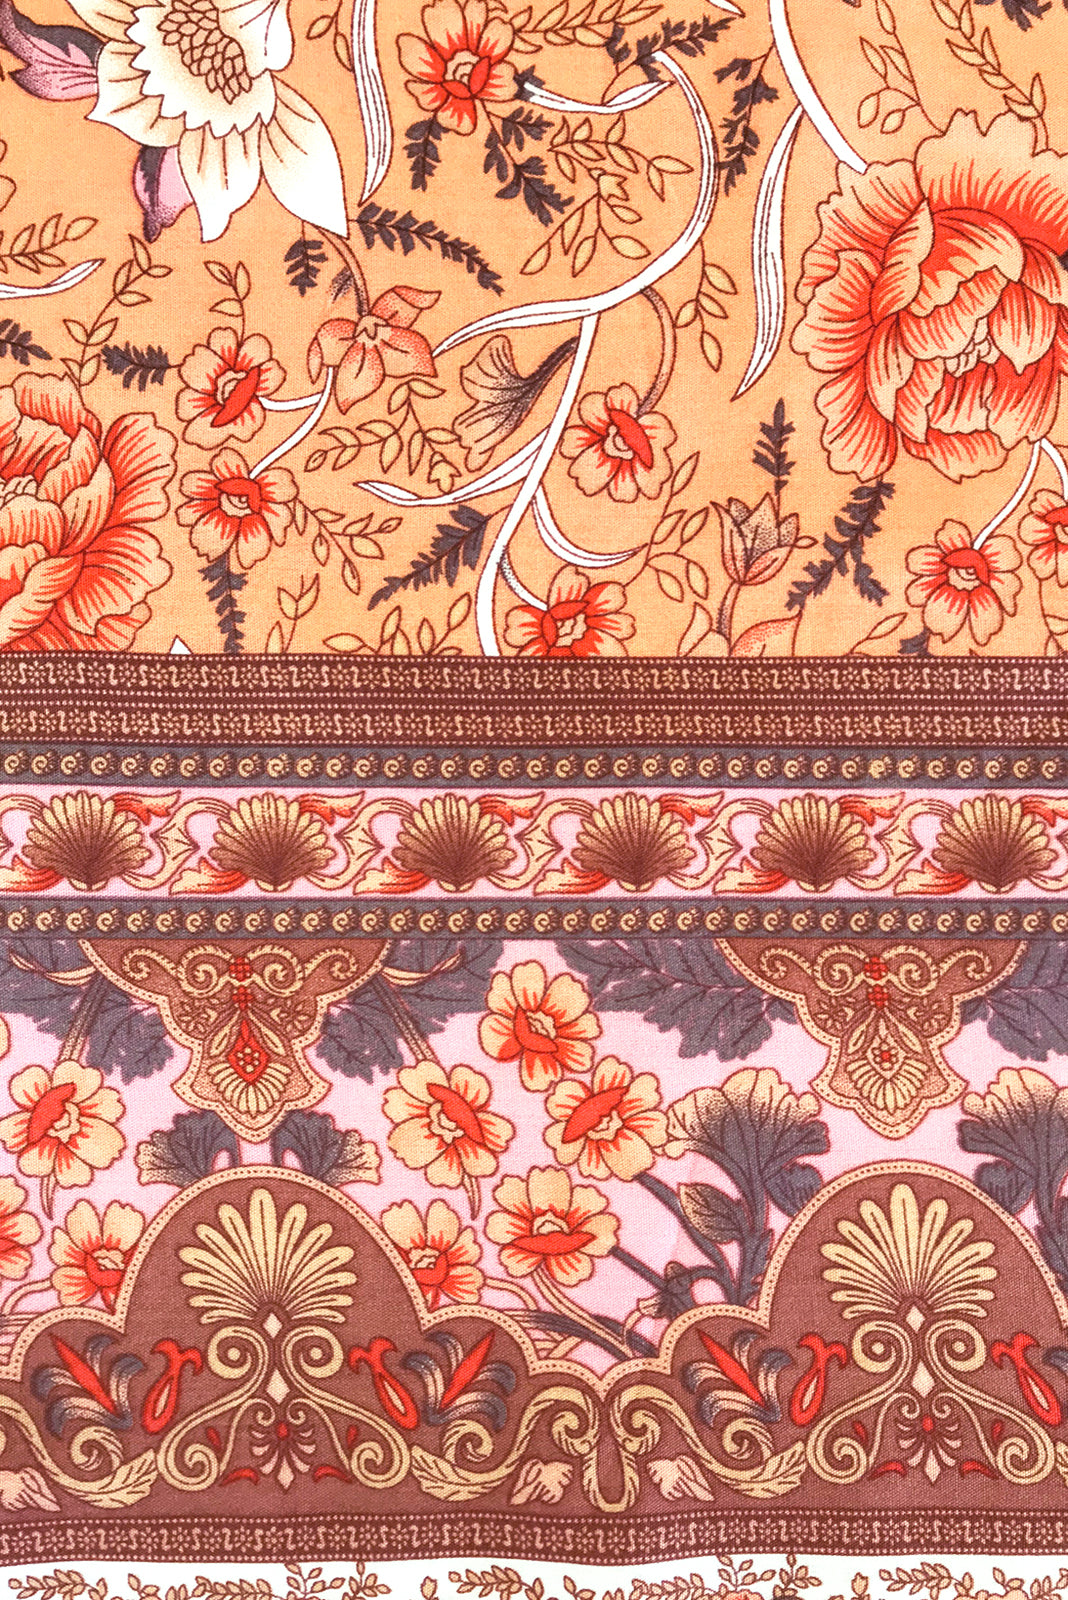 Fabric Swatch of Juniper Daybreak Orange Dress featuring 100% viscose in light orange base with a bohemian floral print and border feature.